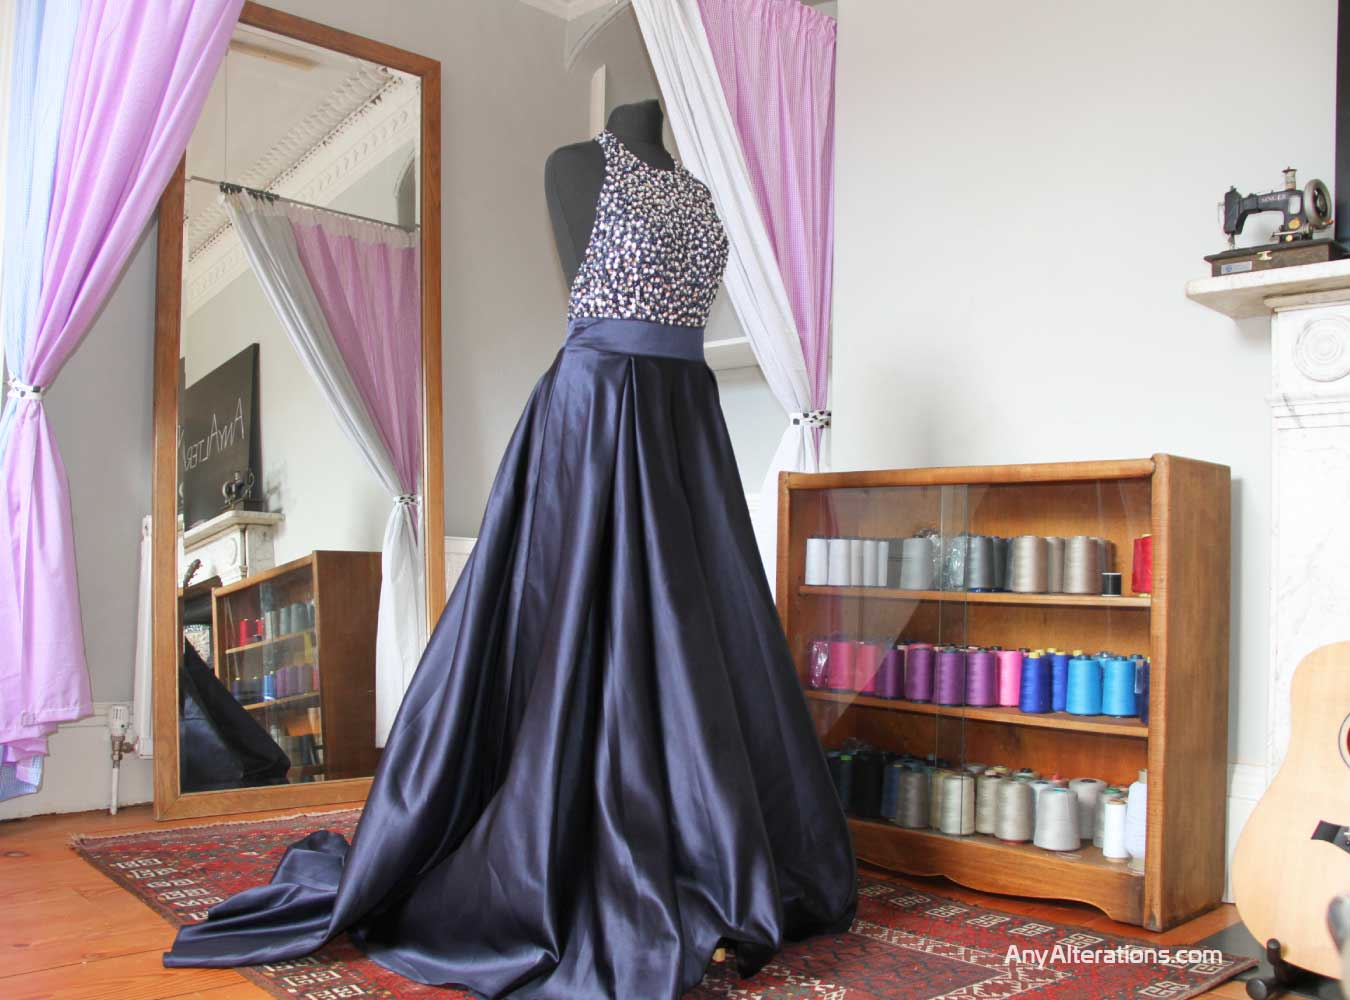 Prom-dress-by-AnyAlterations.com-